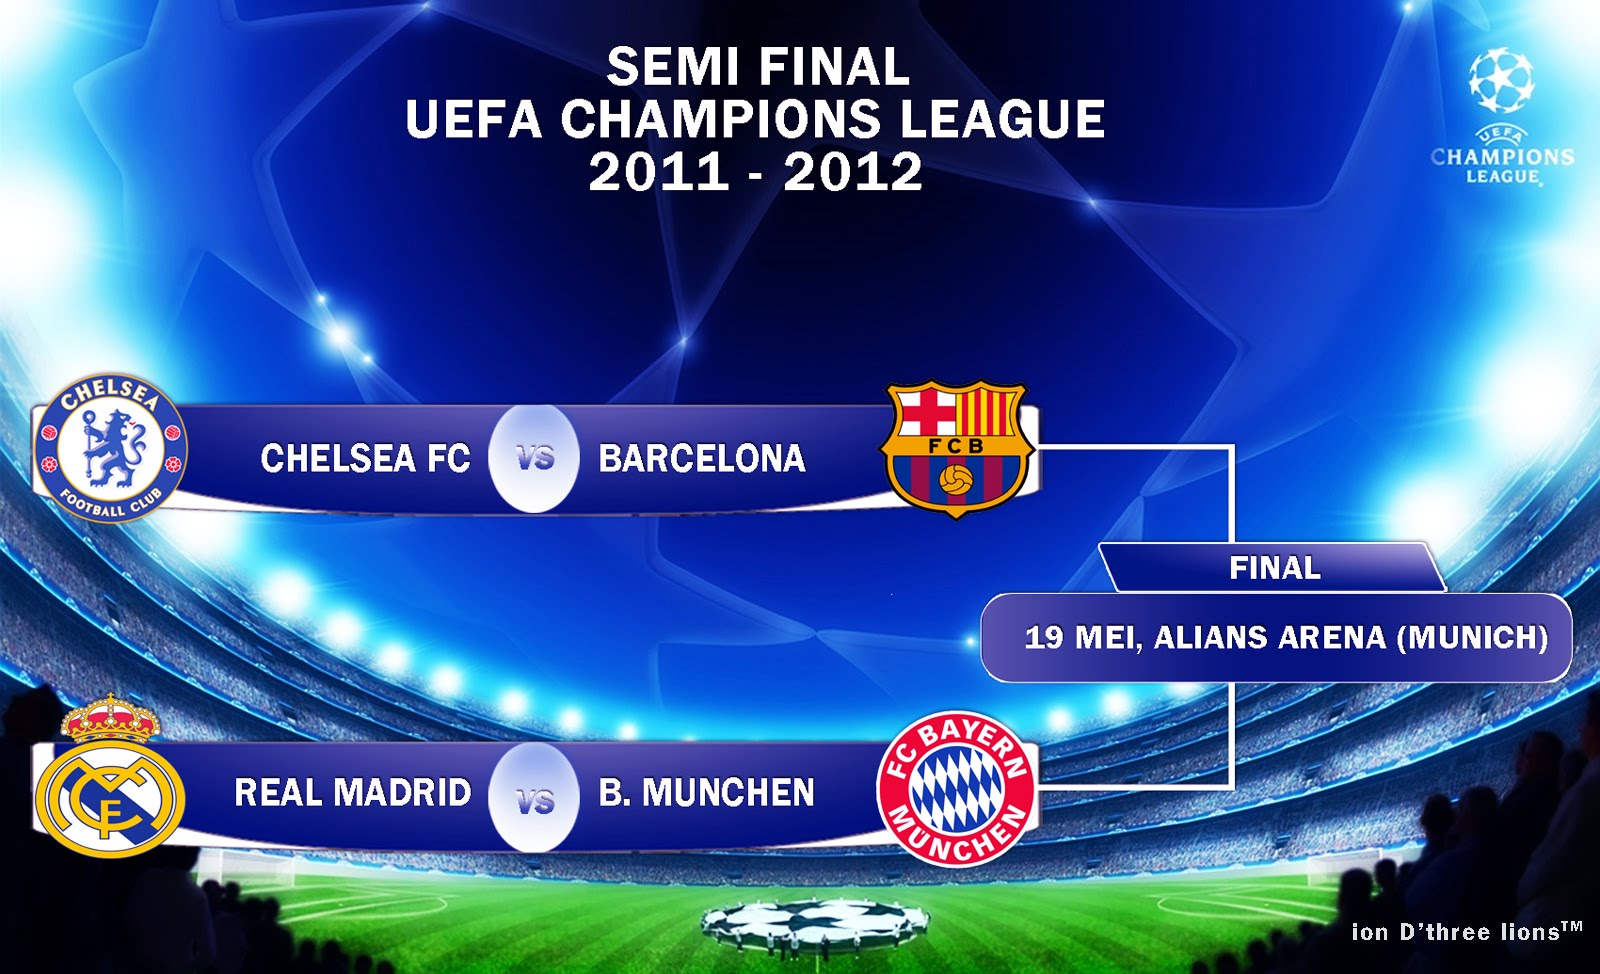 Semi Final UEFA CHAMPIONS LEAGUE 2012 :